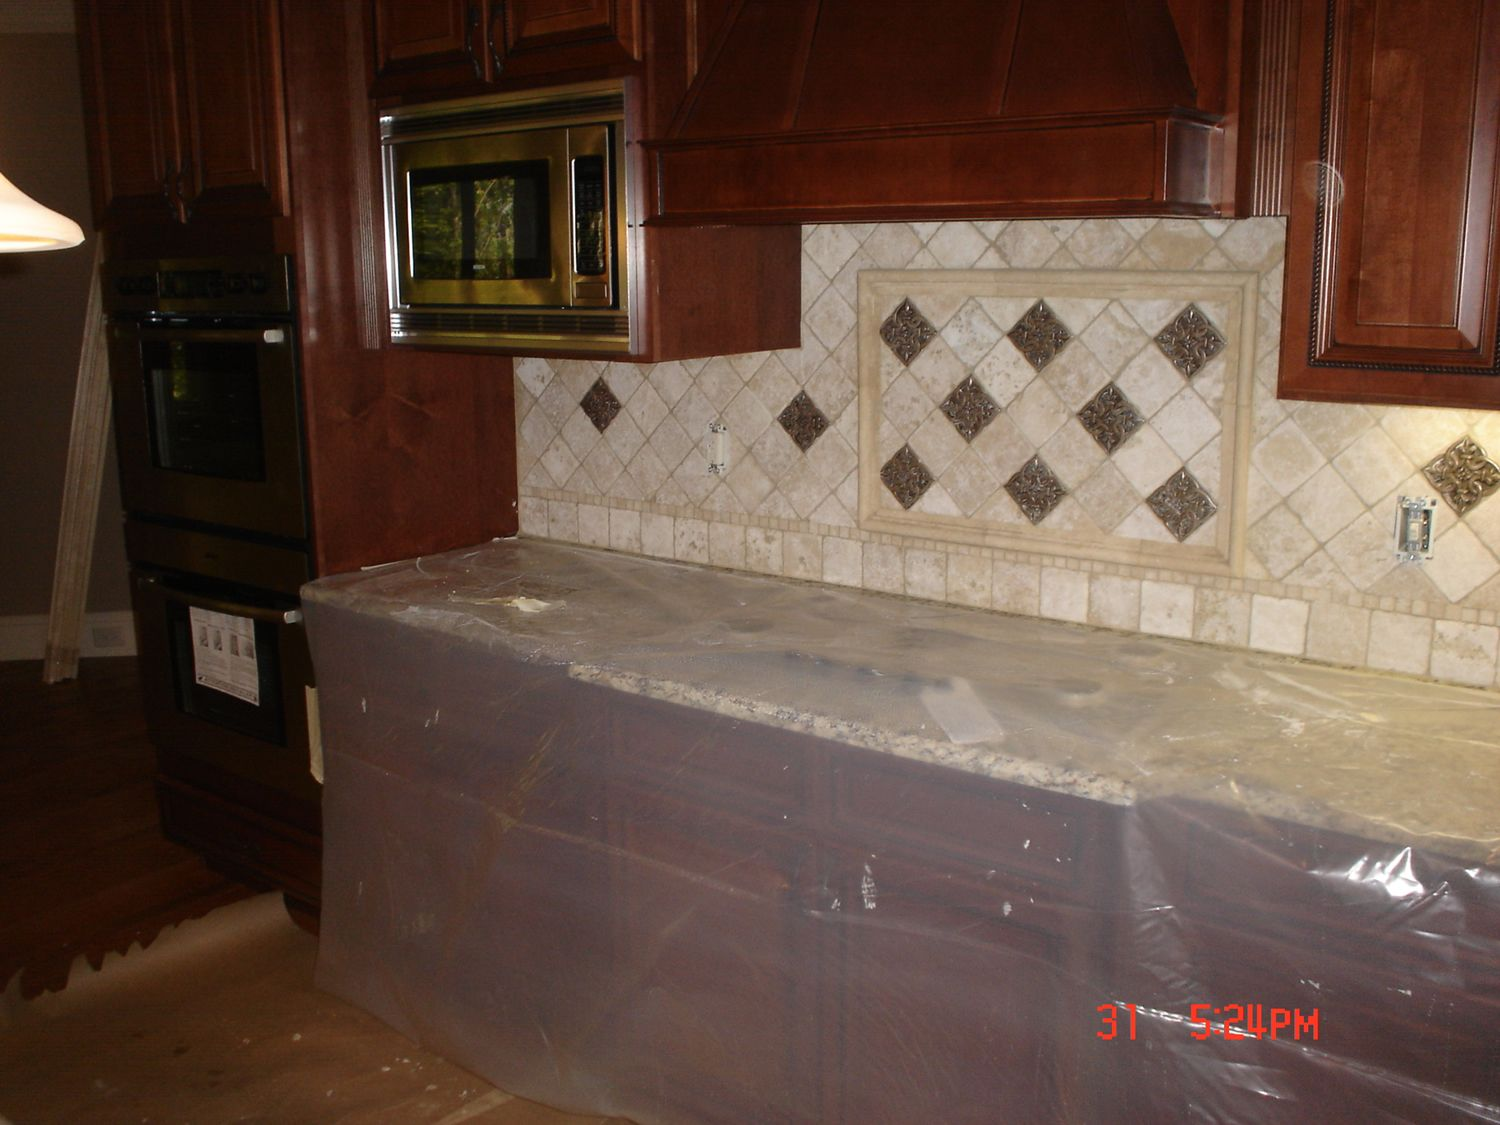 Kitchen travertine tile backsplash ideas kitchen tile for Bathroom backsplash ideas